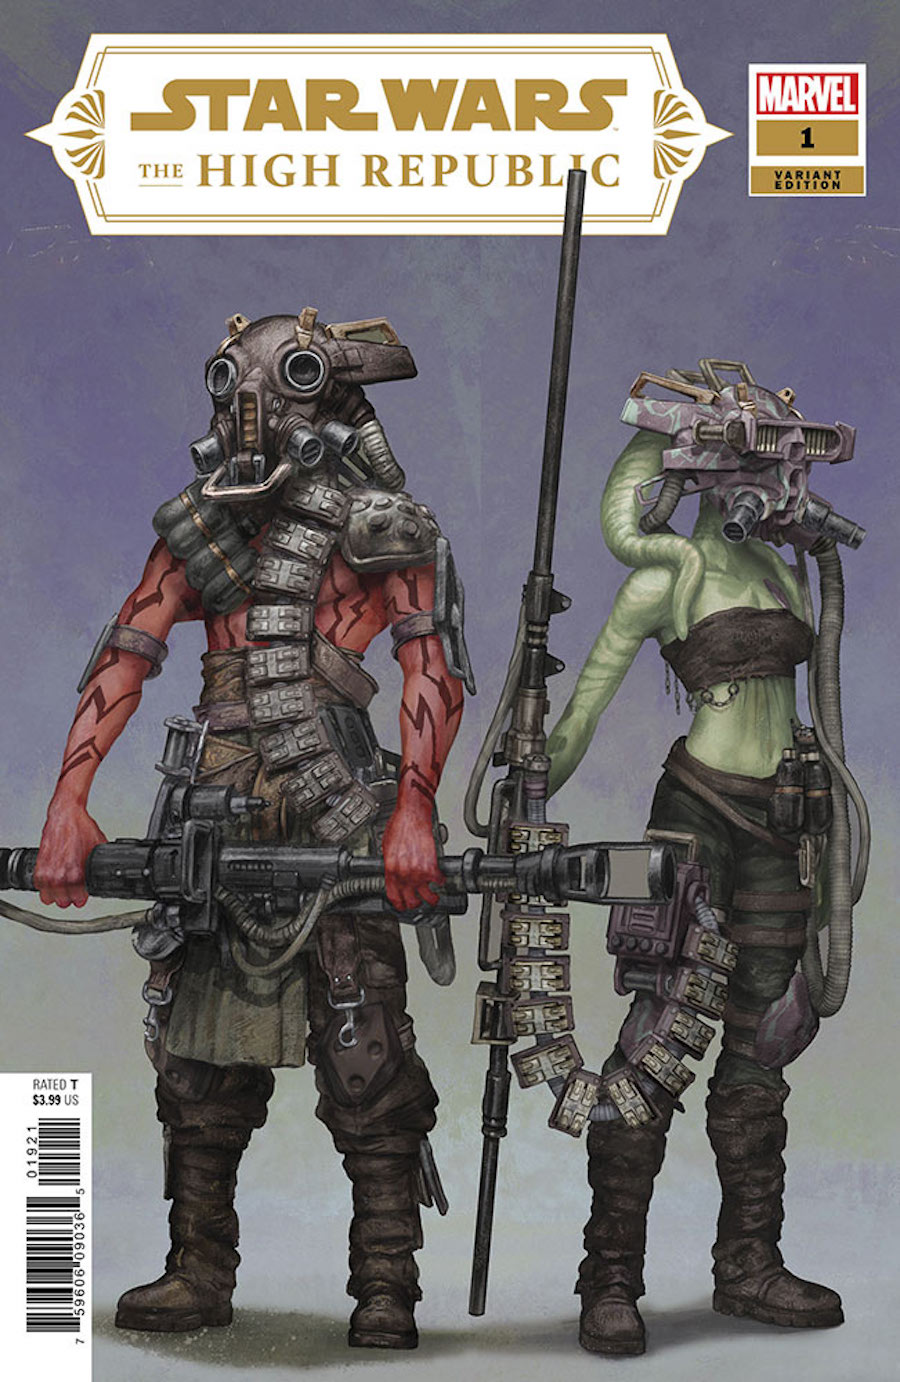 STAR WARS Announces New THE HIGH REPUBLIC Series of Books_4